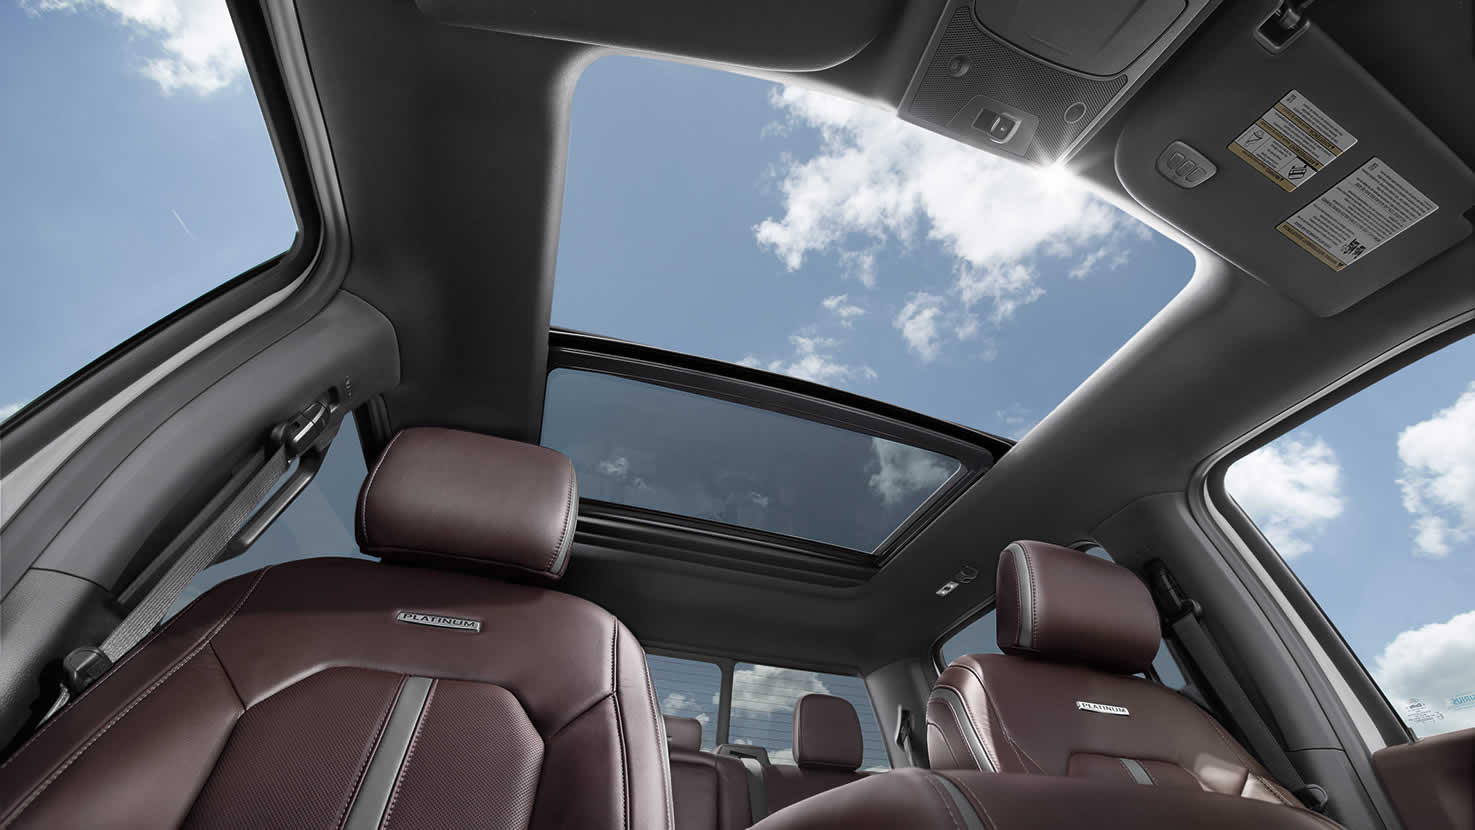 Platinum Used Cars >> Ford plans to include a mirage roof in their cars - Patent Yogi LLC